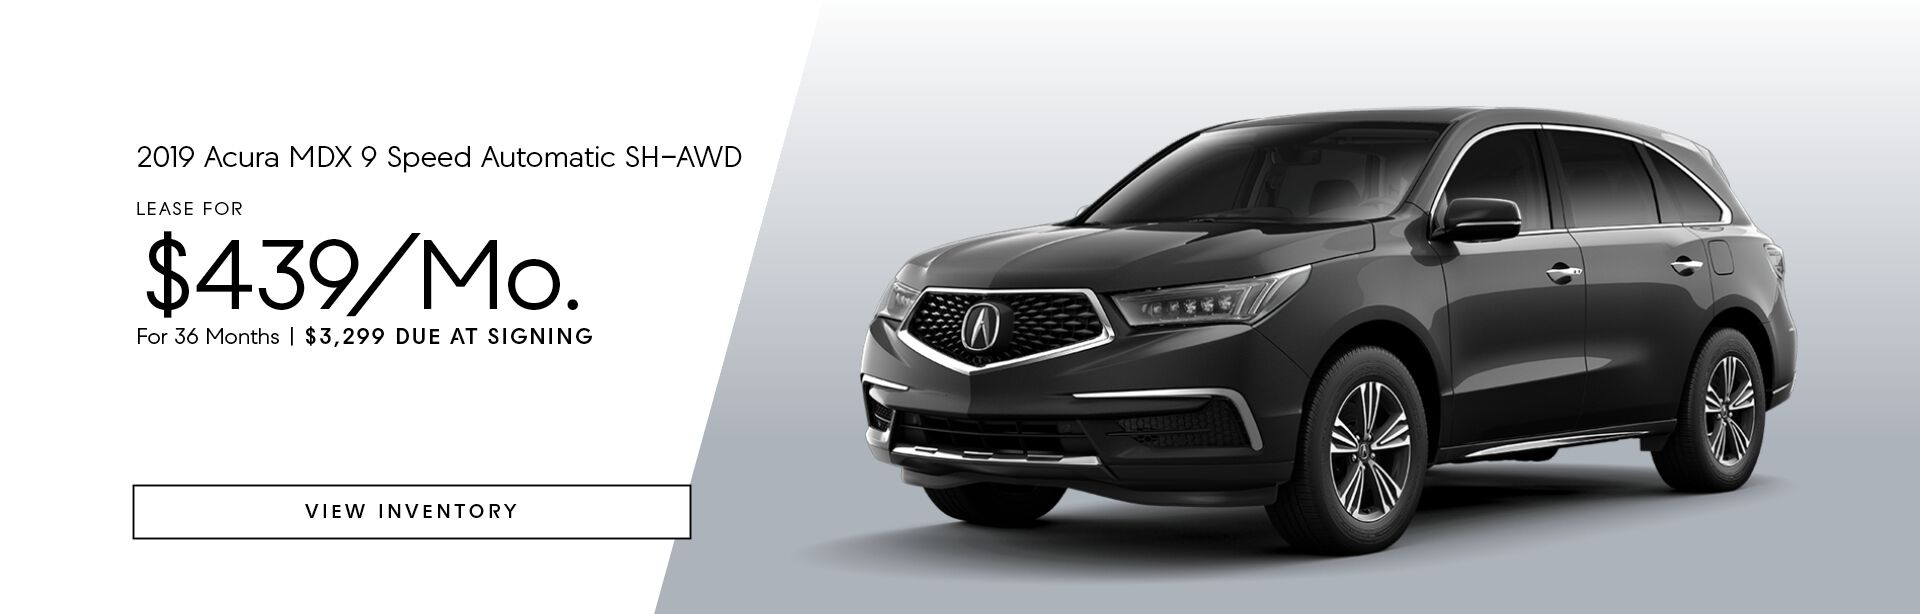 2019 Acura MDX 9 Speed Automatic SH-AWD